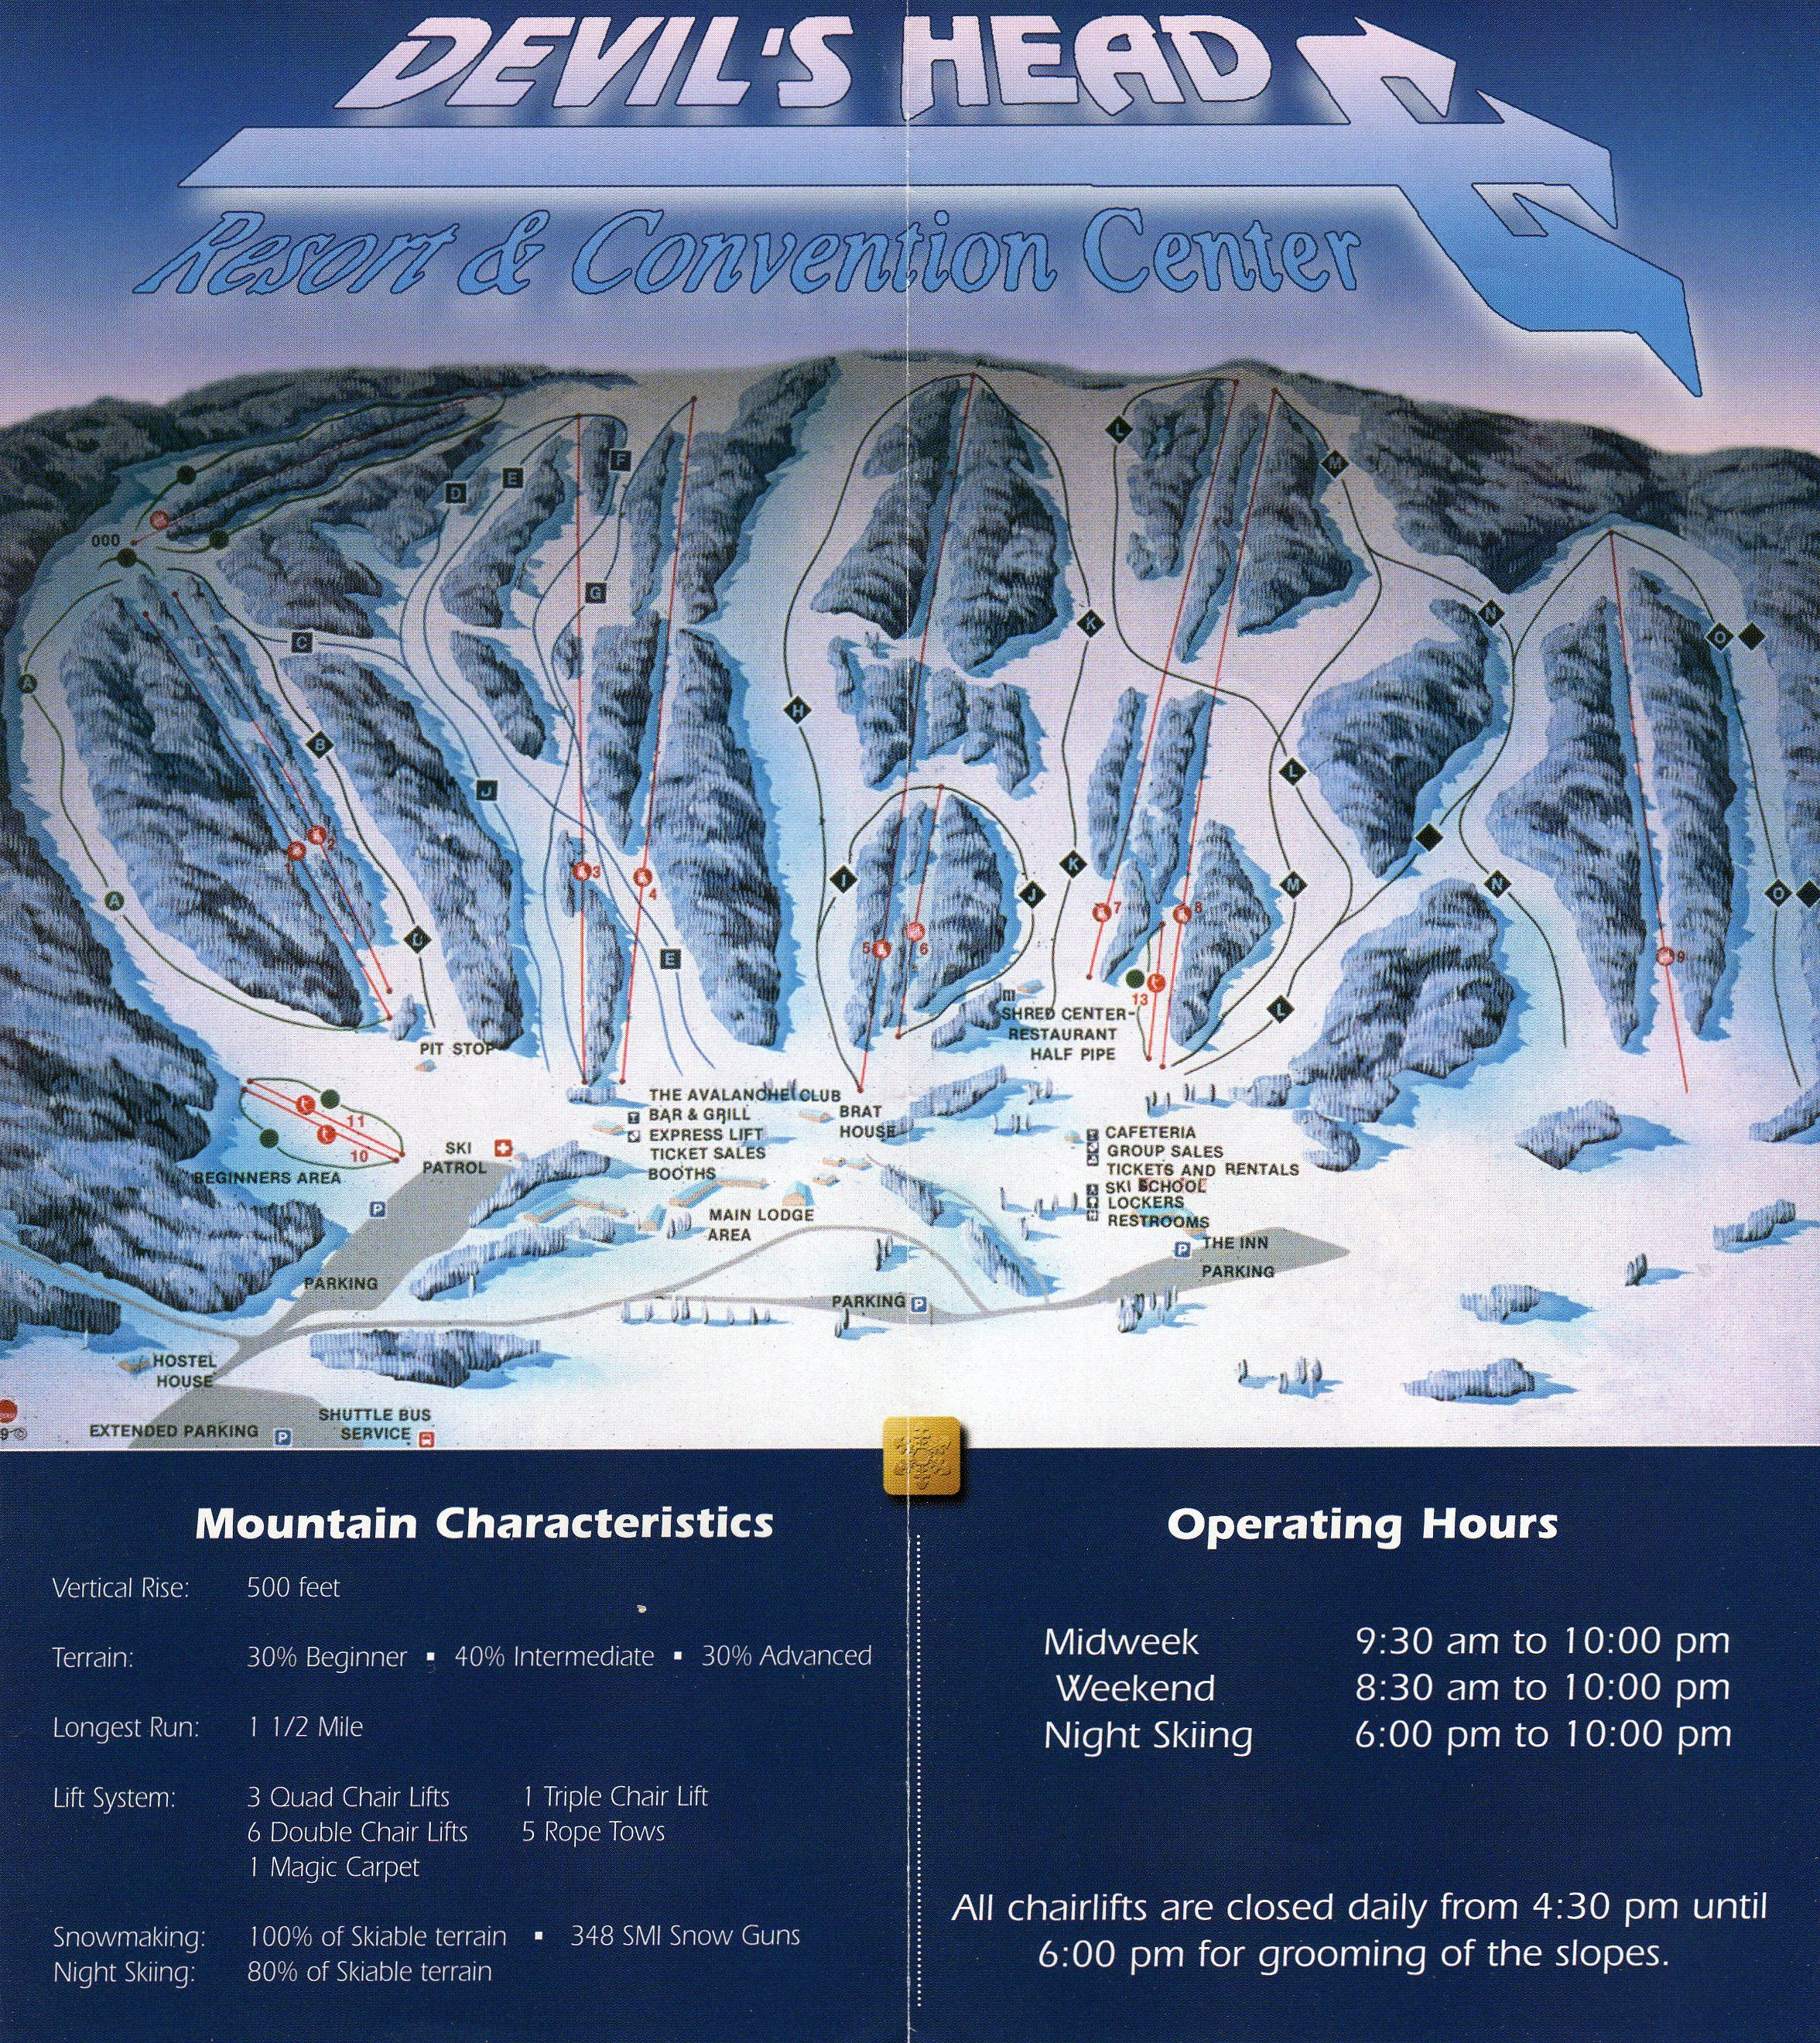 Best Places In The Us To Snowboard: Devil's Head Resort, Wisconsin